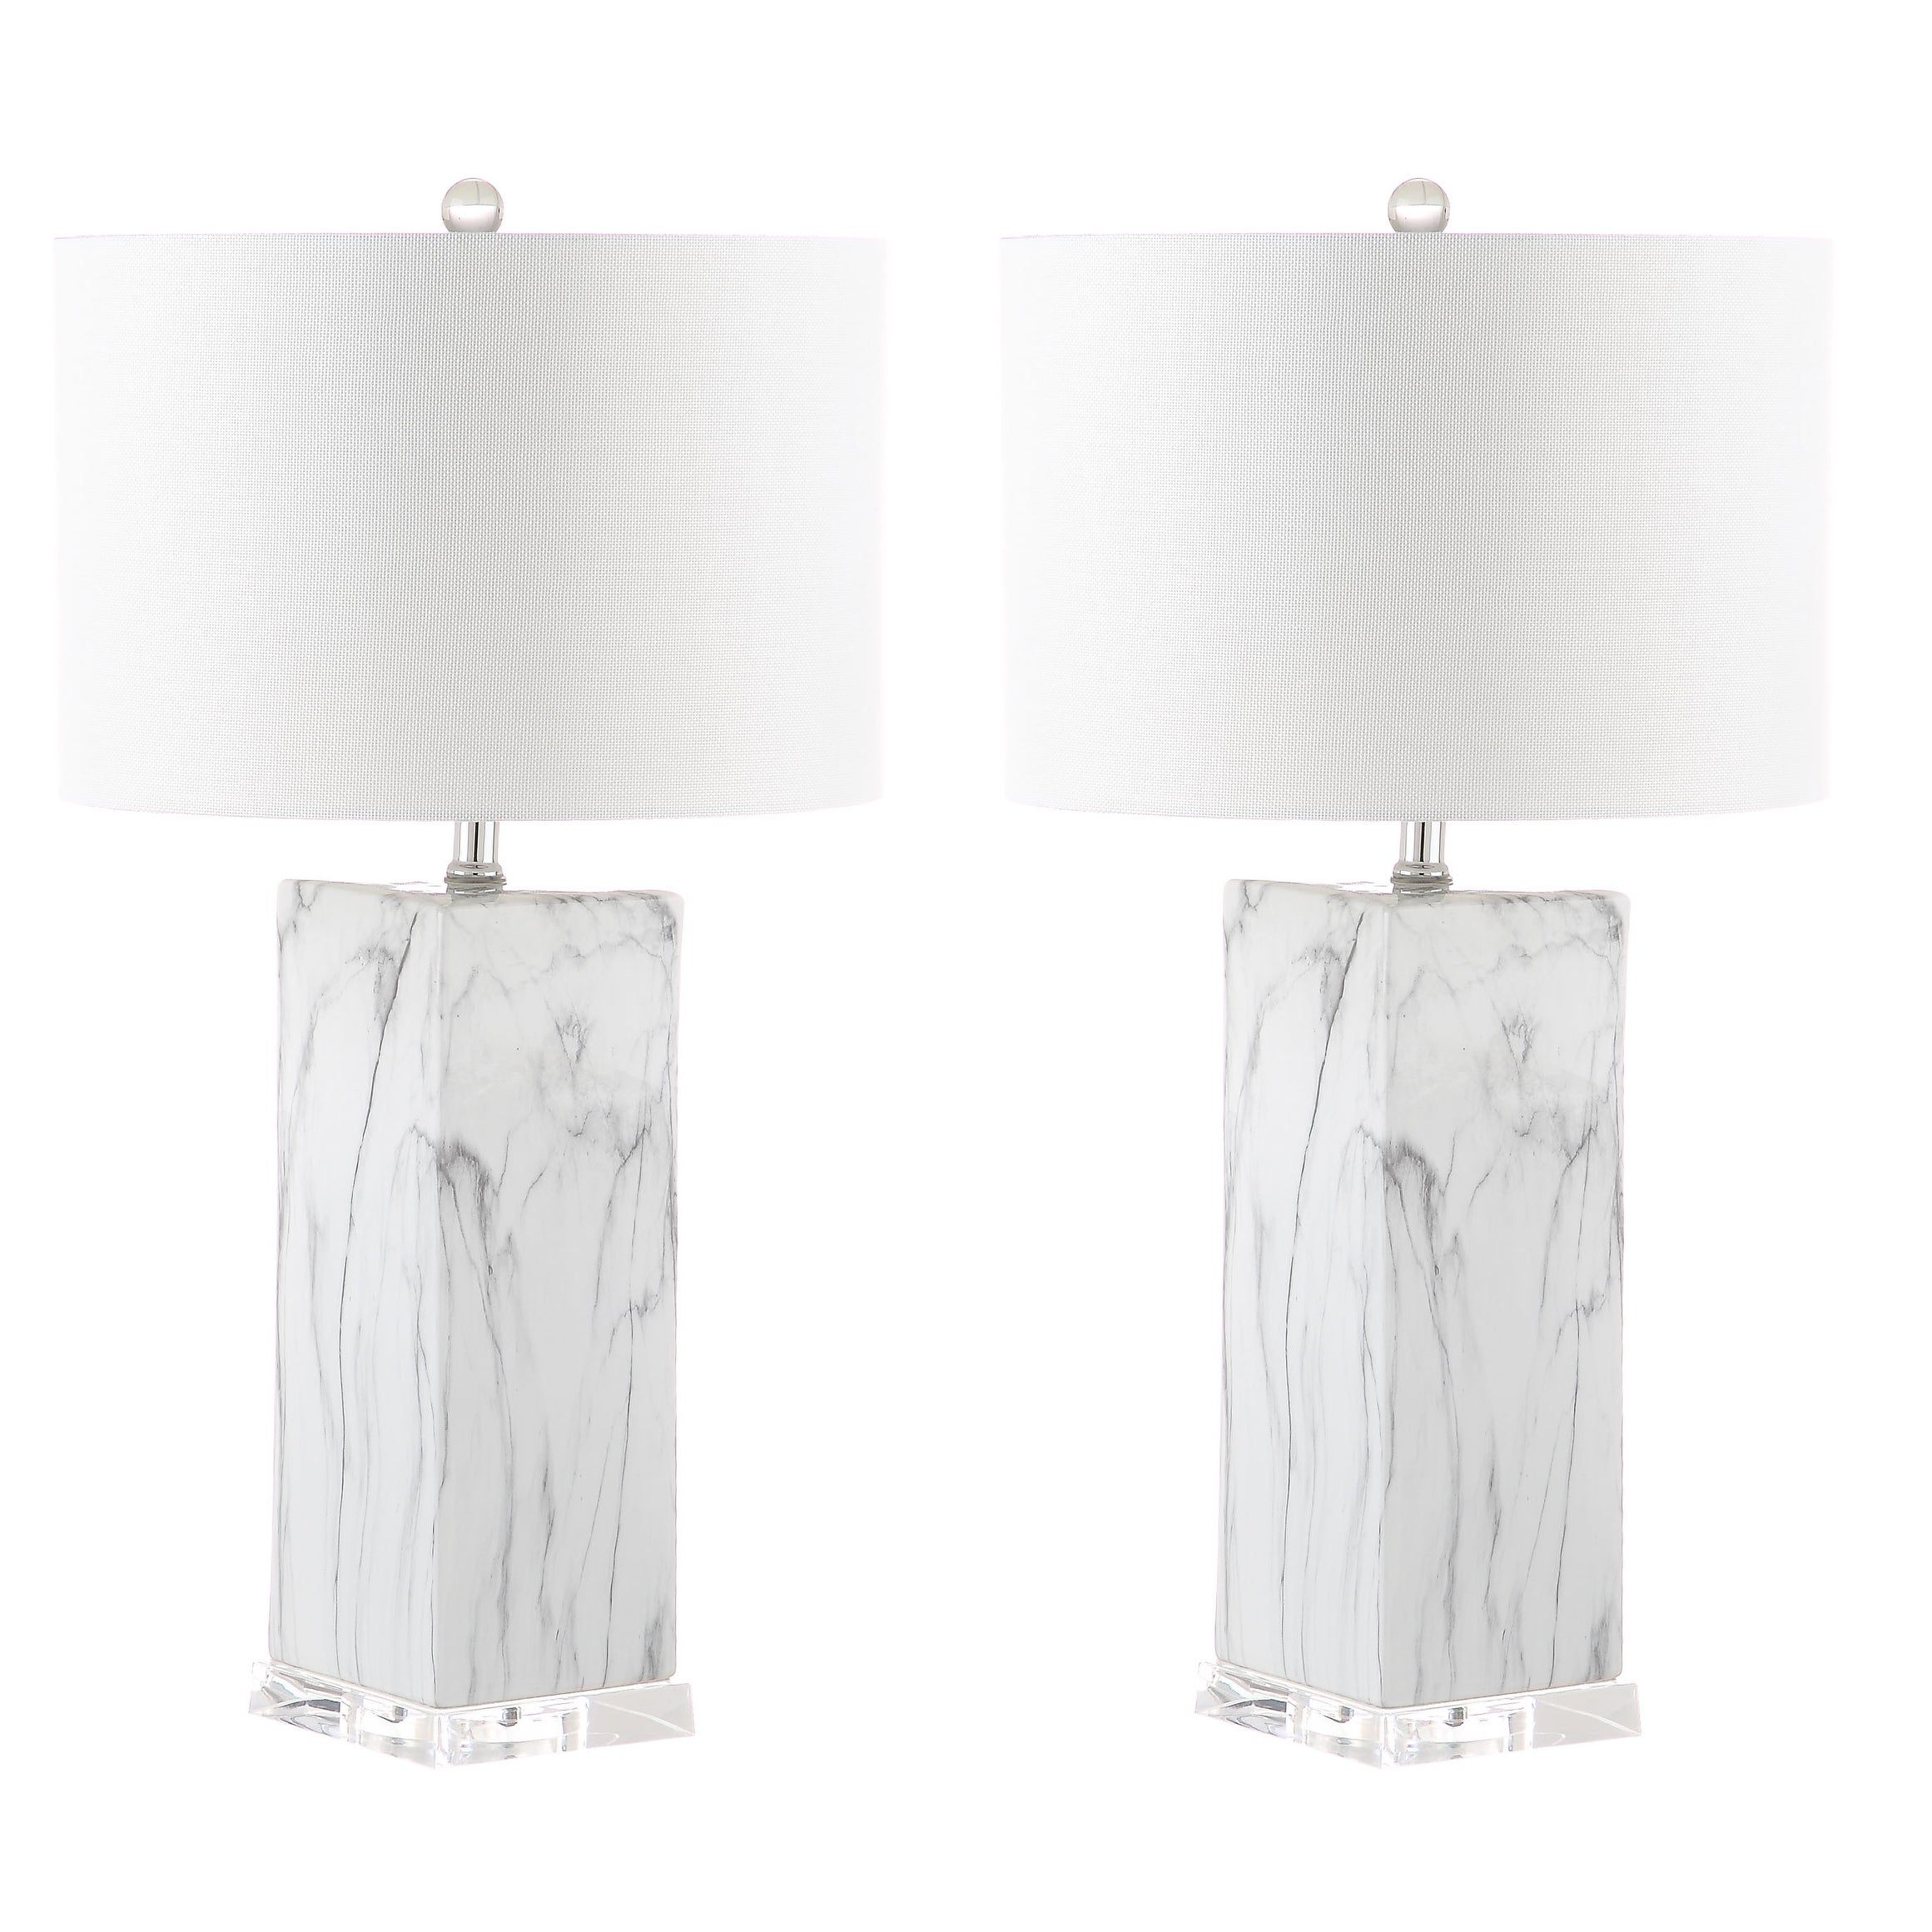 Safavieh Lighting 29 Inch Olympia Marble Table Lamp Set Of 2 15 X15 X29 On Sale Overstock 22256111